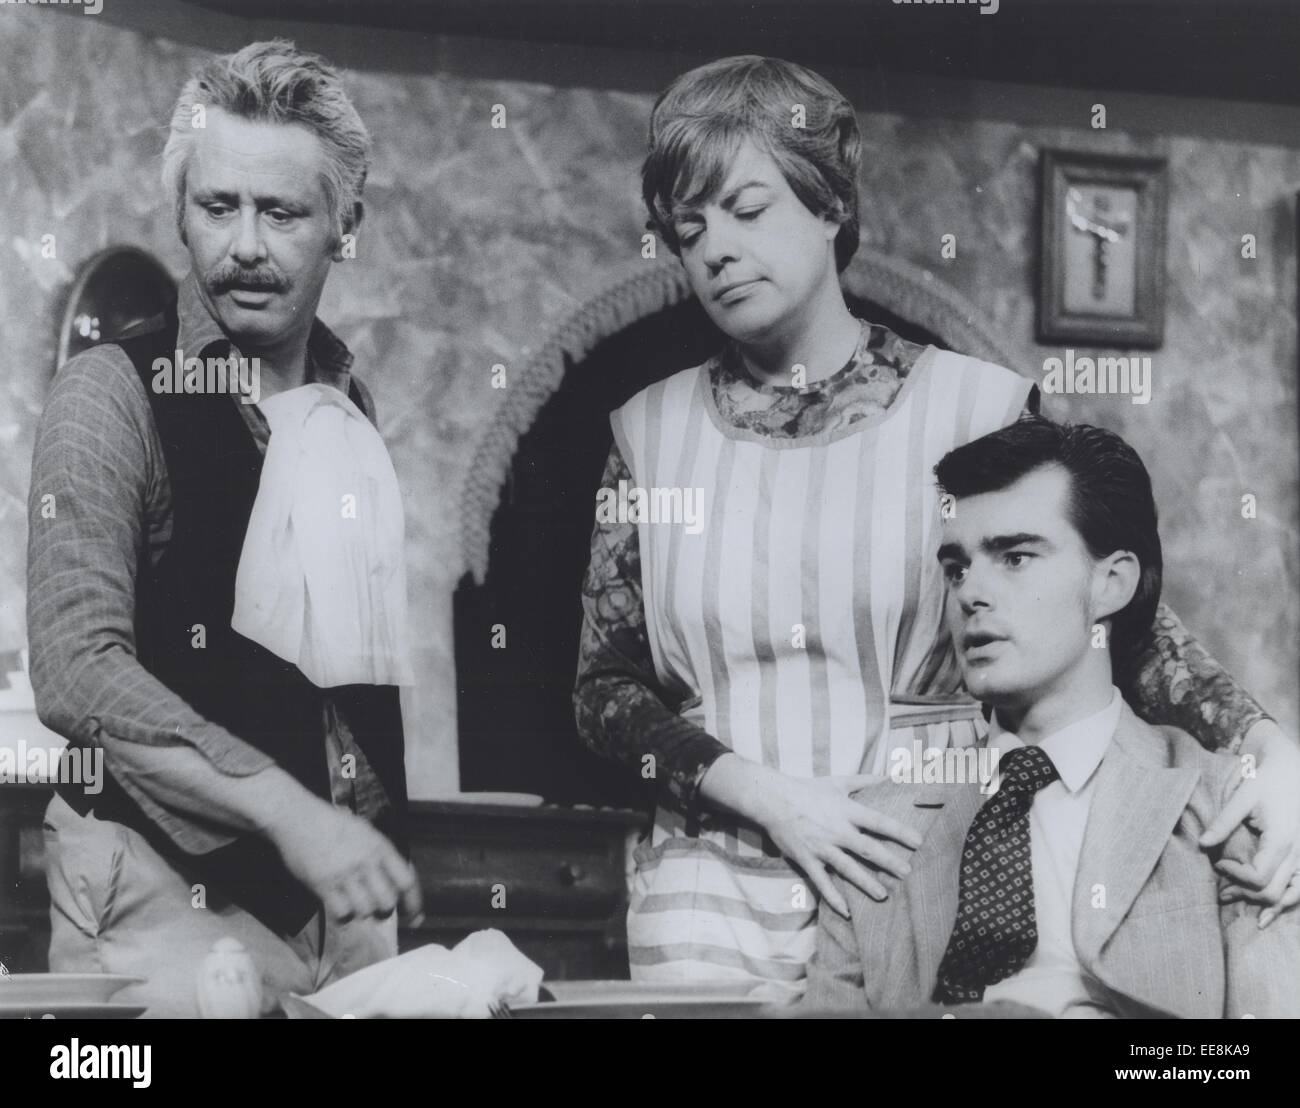 Roger Perry falcon crest